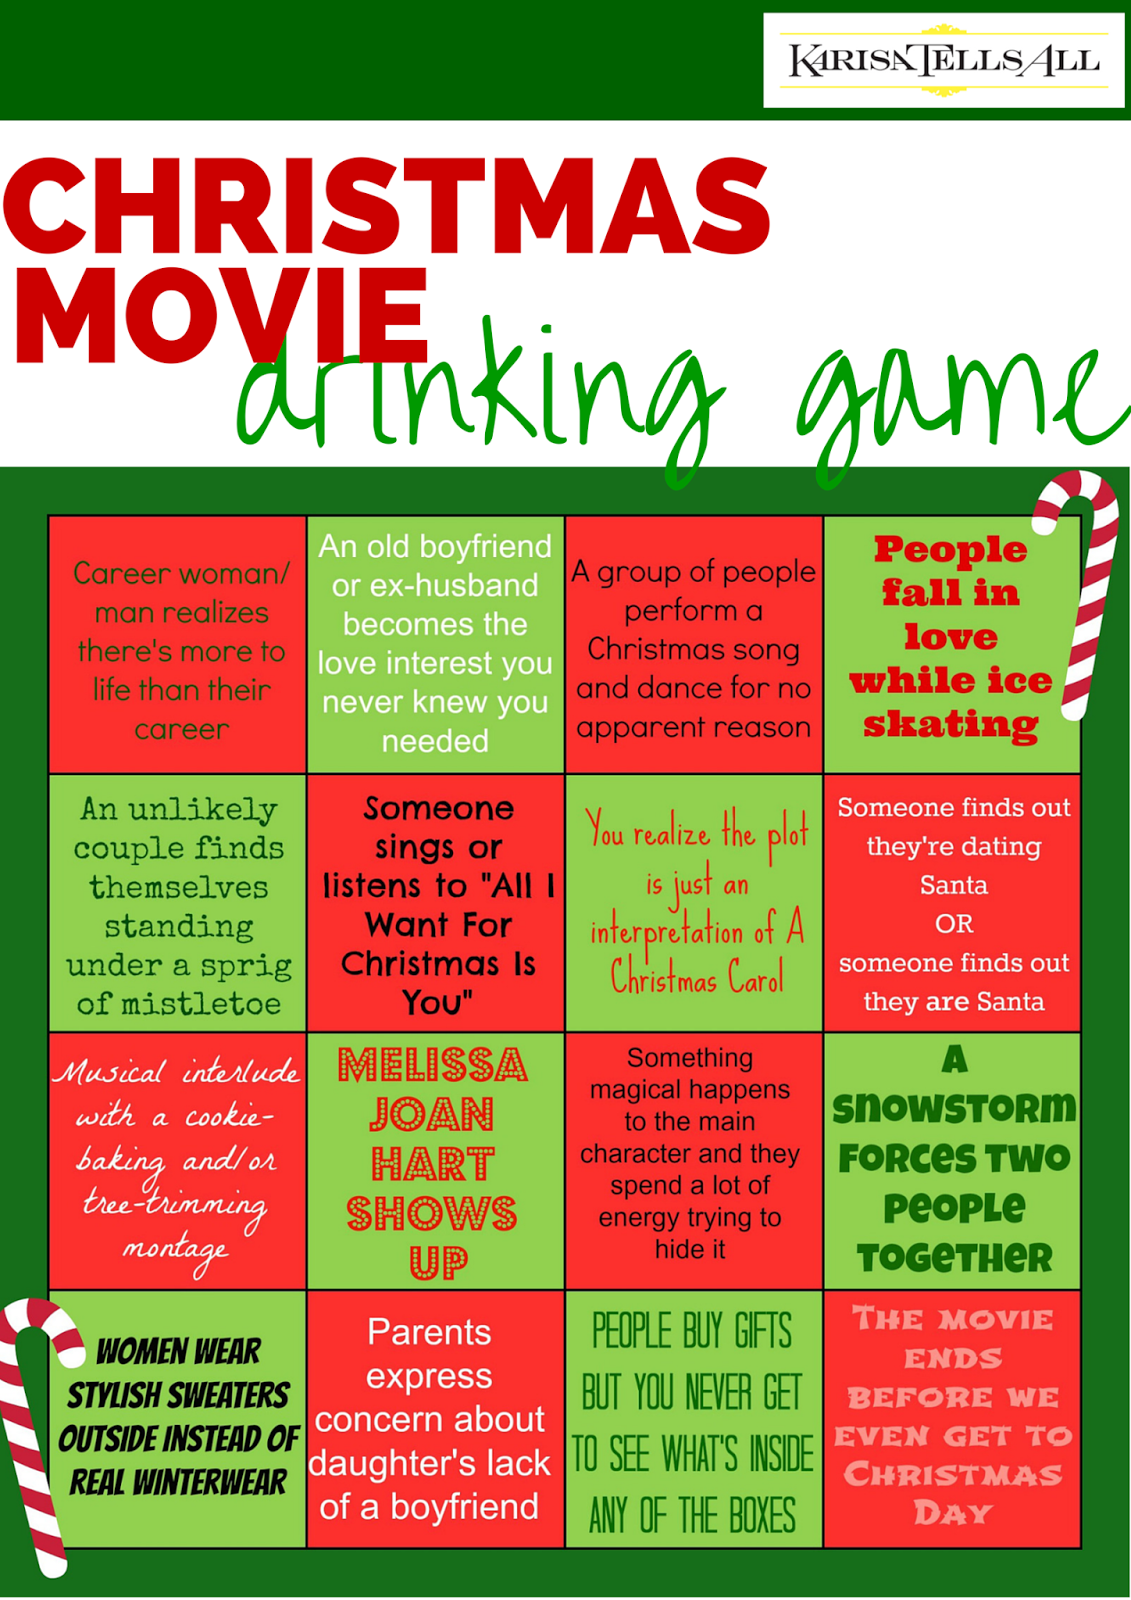 Karisa Tells All: A Festive, Made-for-TV Christmas Movie Drinking Game